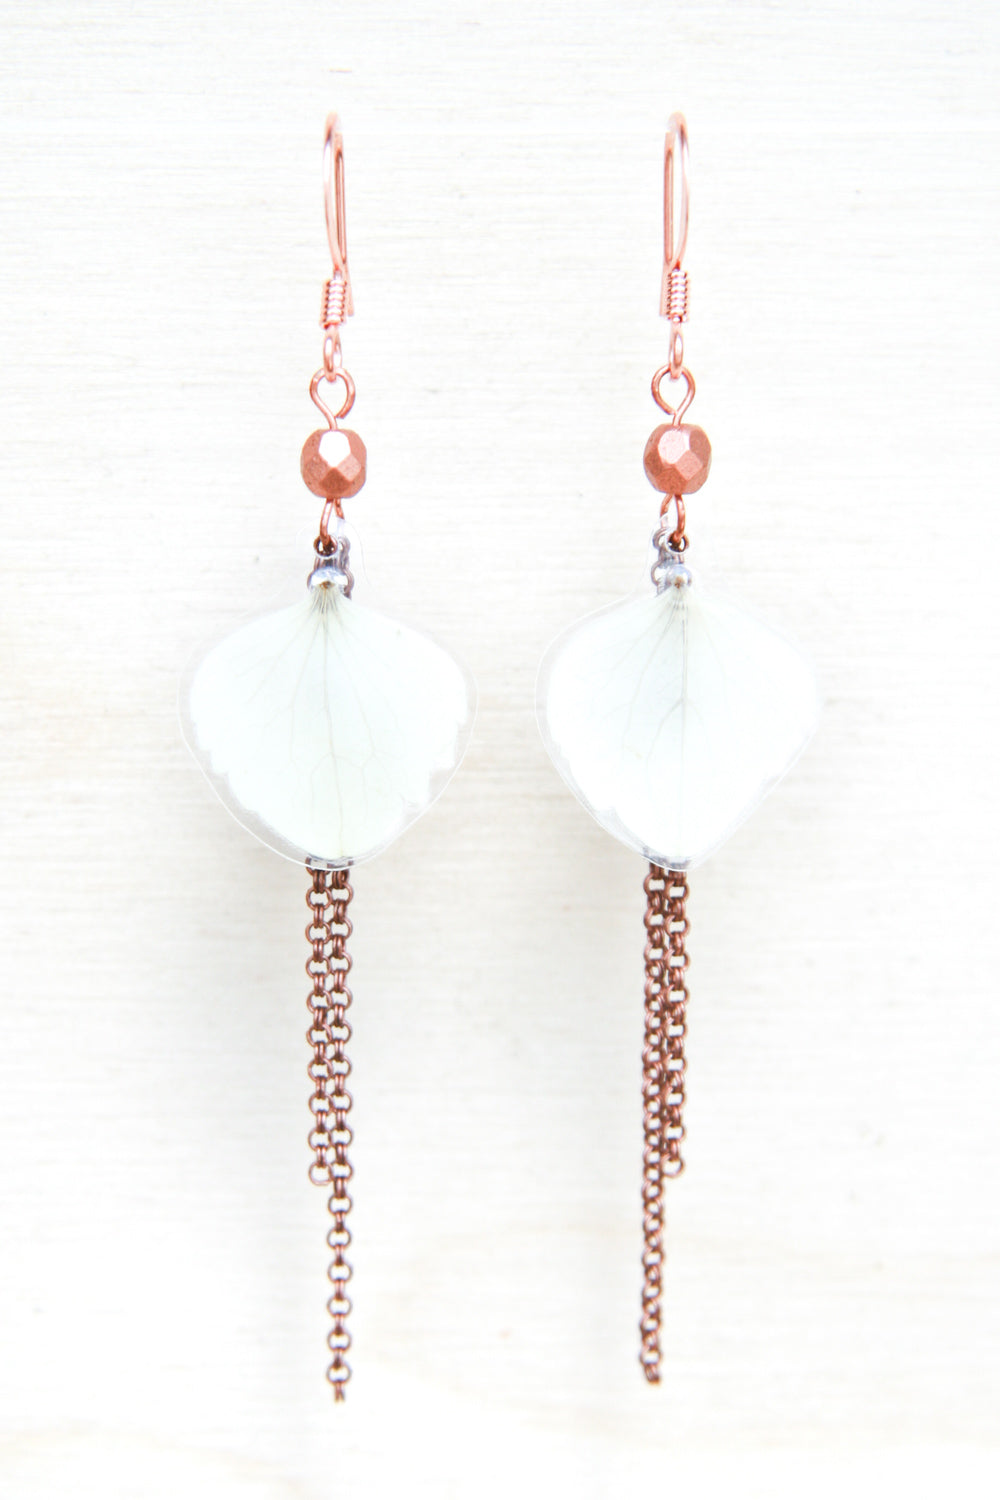 White Hydrangea Petal Earrings with Copper Beads & Dangles